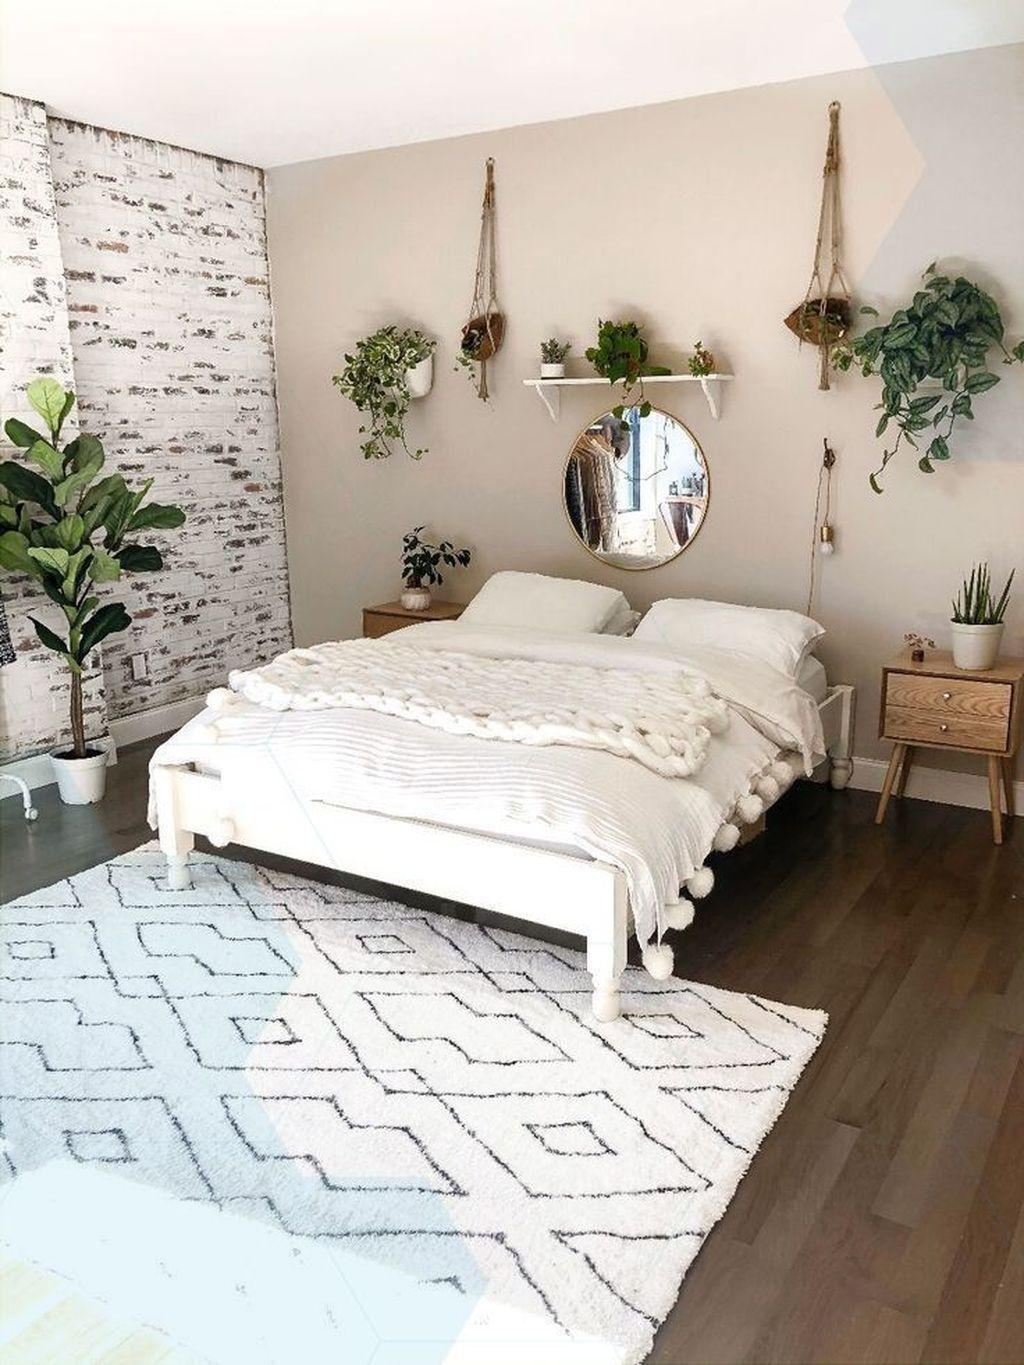 62 Minimalist Bedroom Ideas Perfect For Apartment Being On A